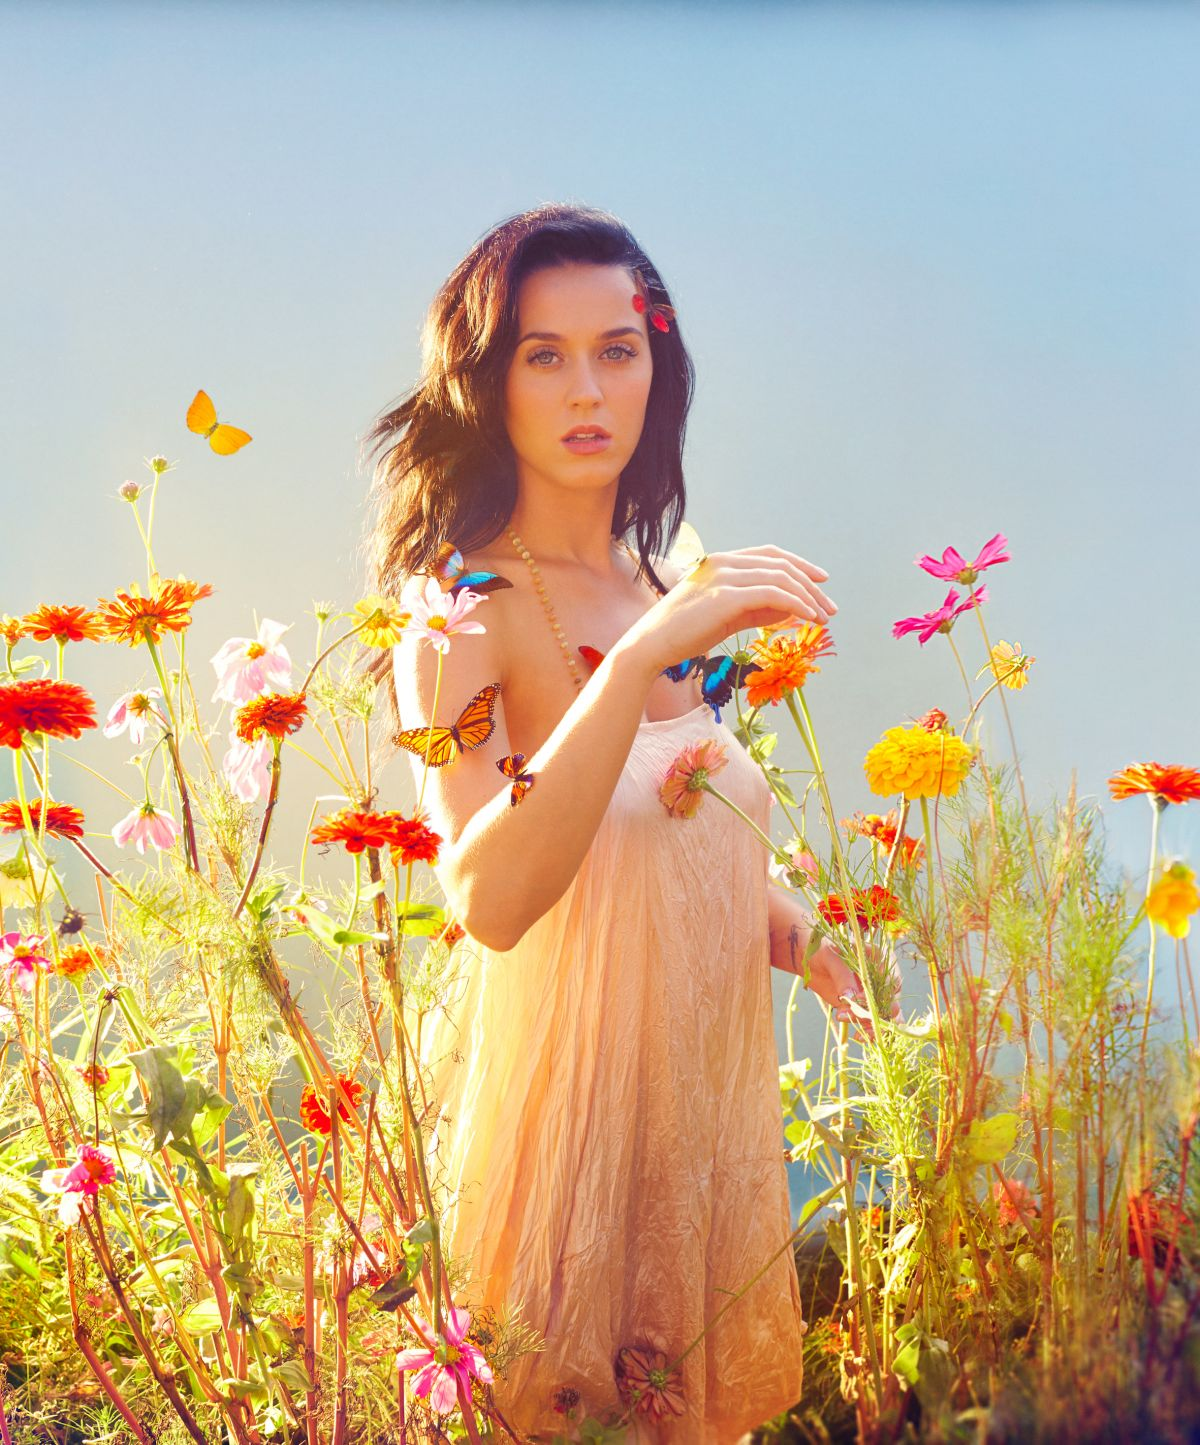 Katy Perry Prism Photoshoot : perry, prism, photoshoot, PERRY, Prism, Album, Photoshoot, HawtCelebs